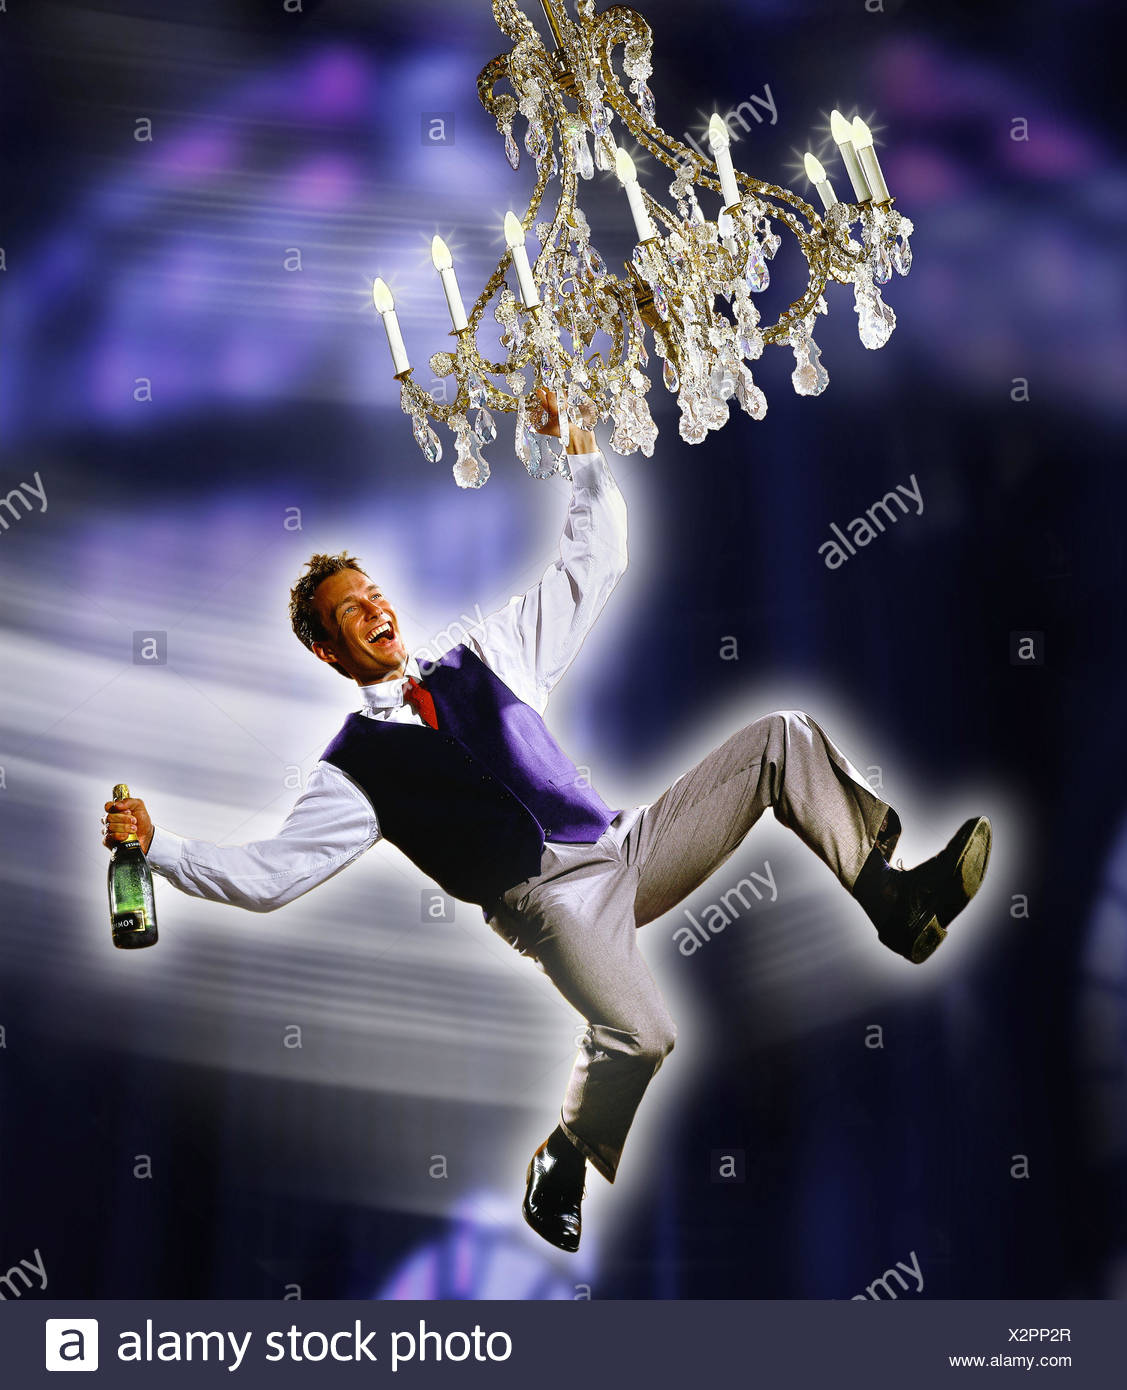 Man Champagne Bottle Chandelier Hang Swing Laugh M Men Composing Studio Celebrate Sparkling Wine Happy Melted High Spirited